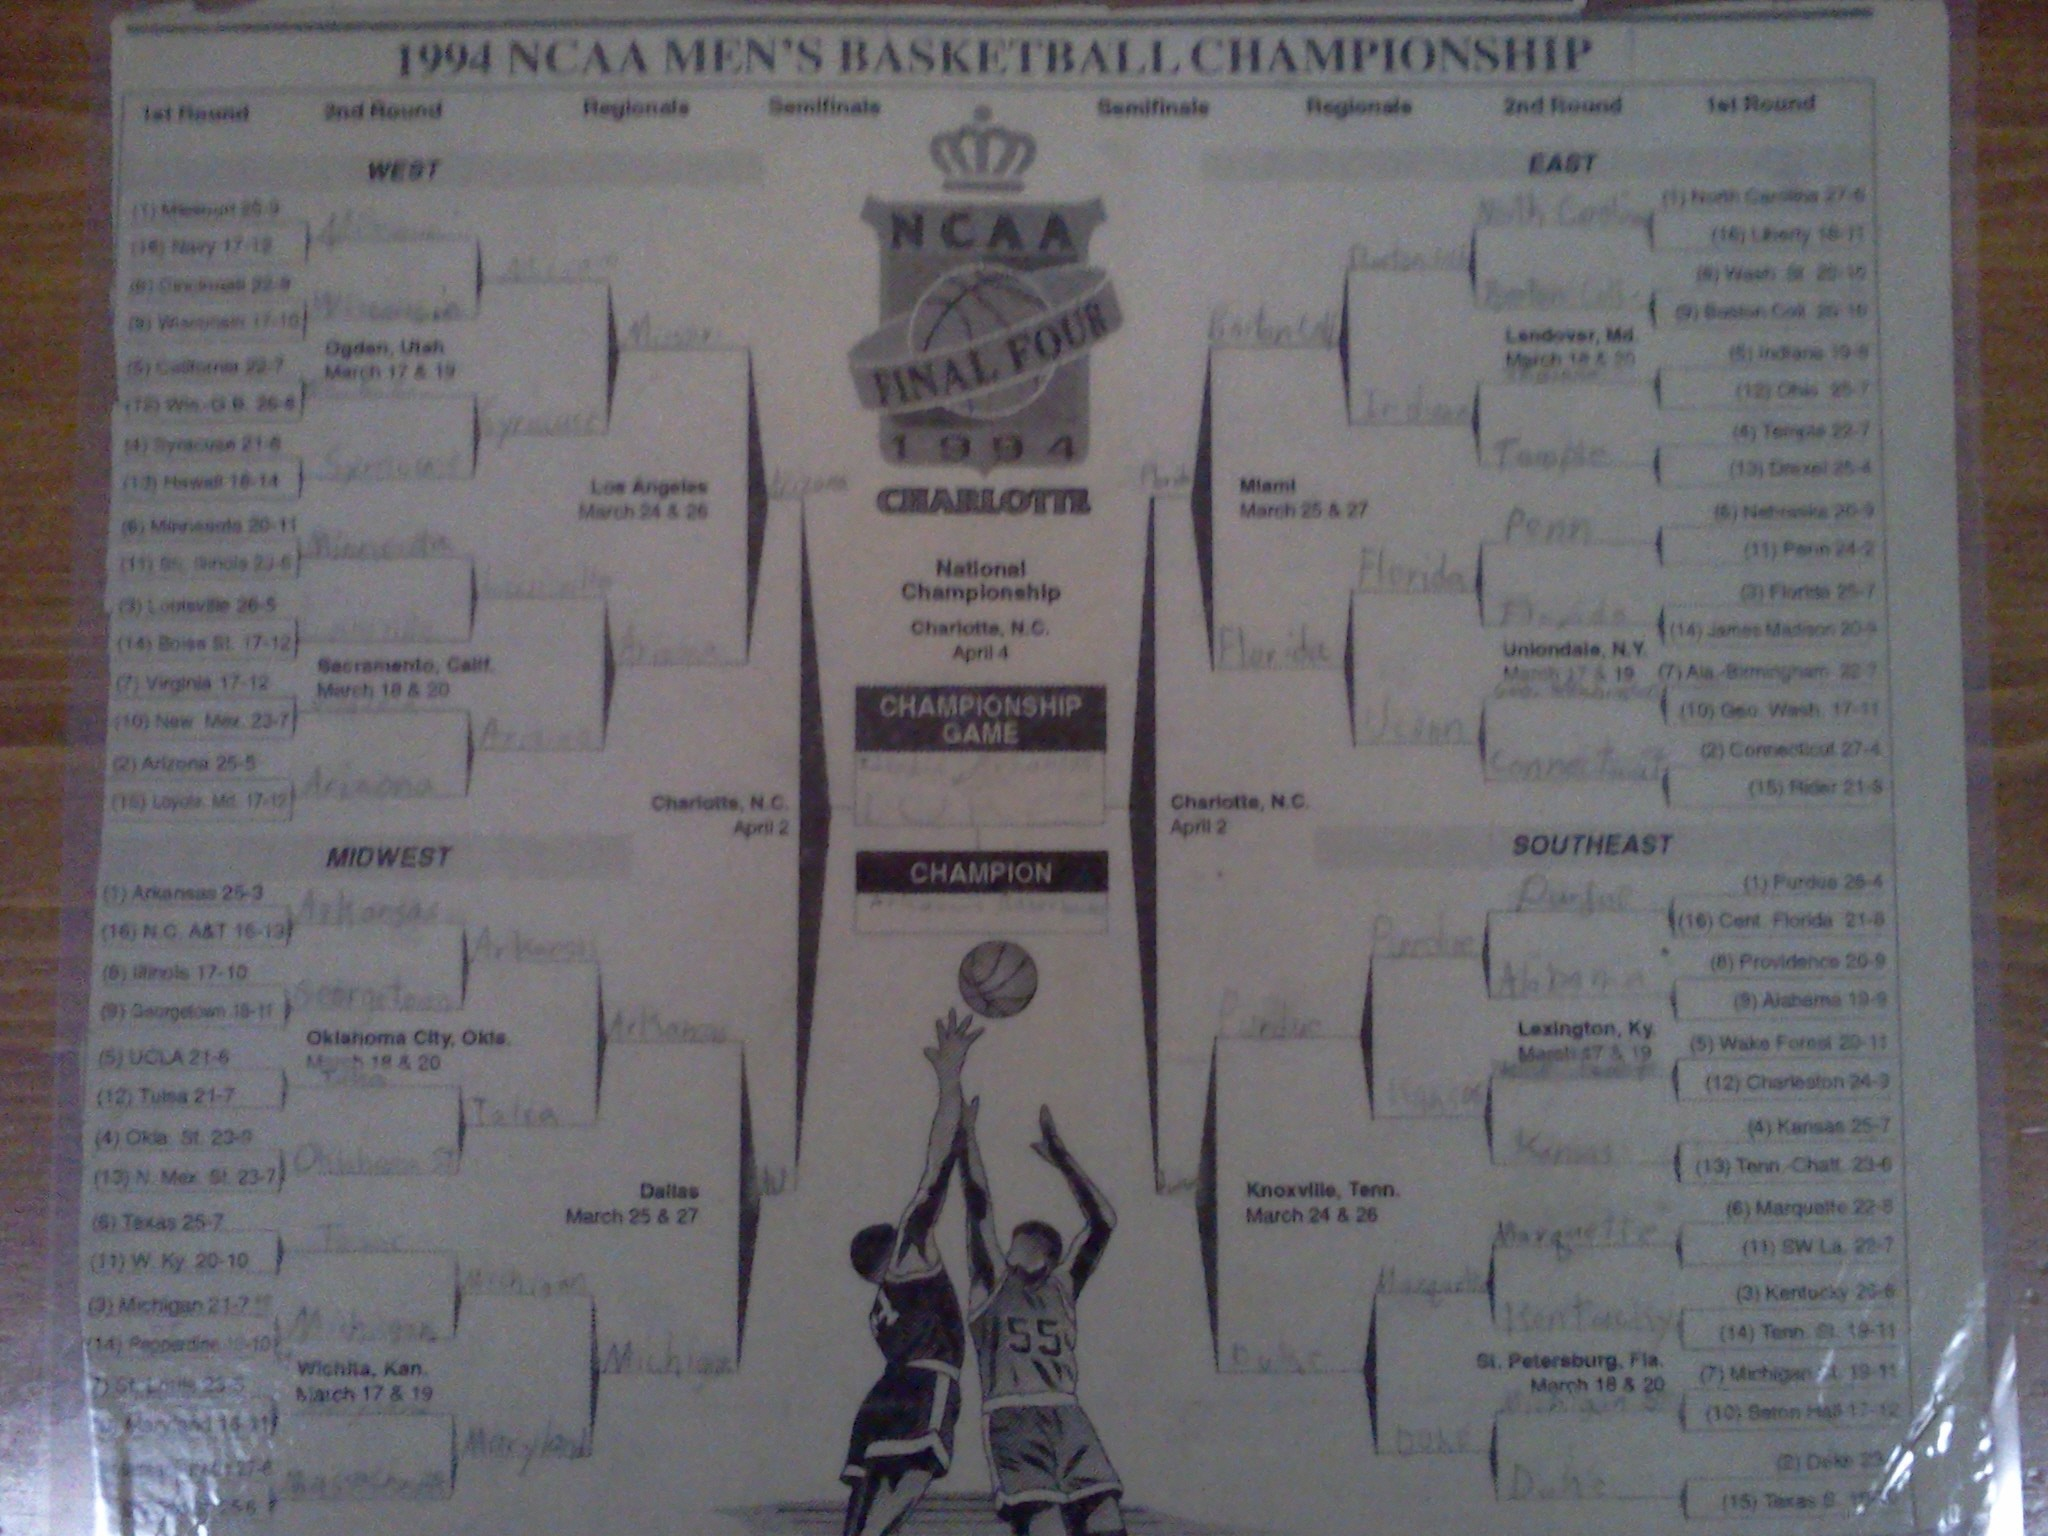 Yes, it's the 1994 NCAA Tournament bracket. In 4th grade I caught pneumonia in early March and missed school for a week. My mom cut the bracket out of the newspaper to give me something to do. I've been hooked ever since.